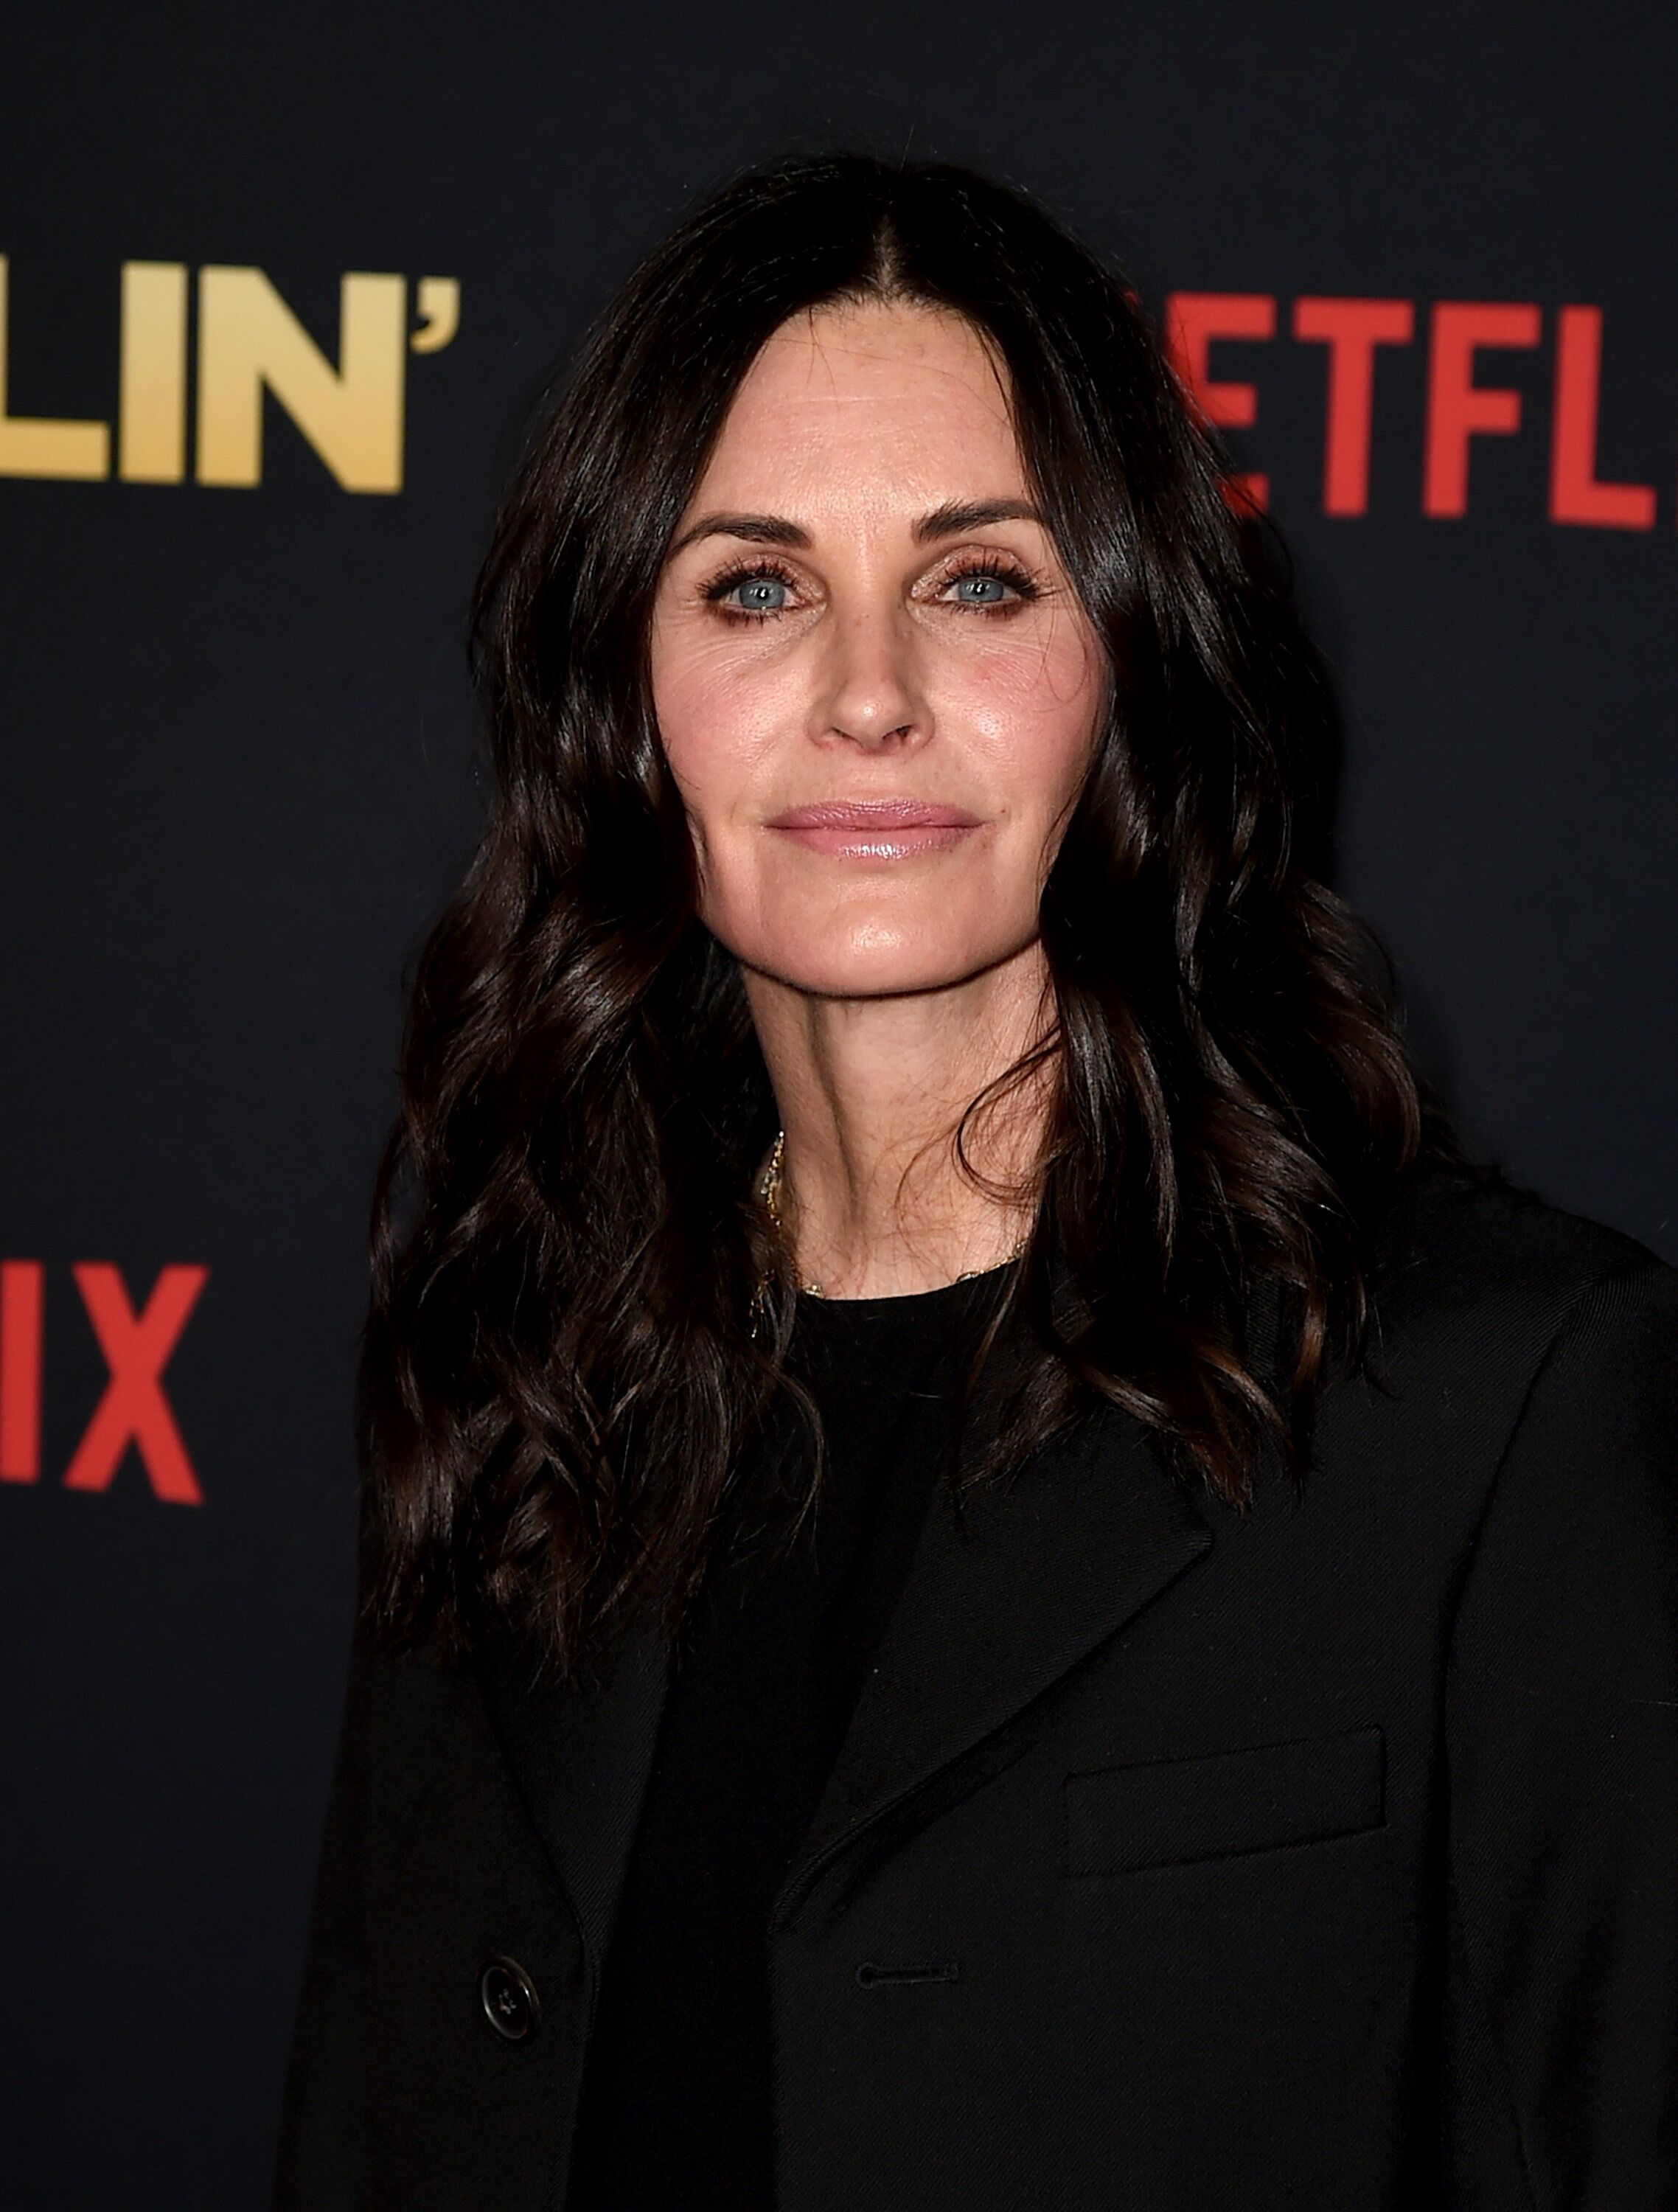 """Courteney Cox arrives at the premiere of Netflix's """"Dumplin'"""" at the Chinese Theater. 